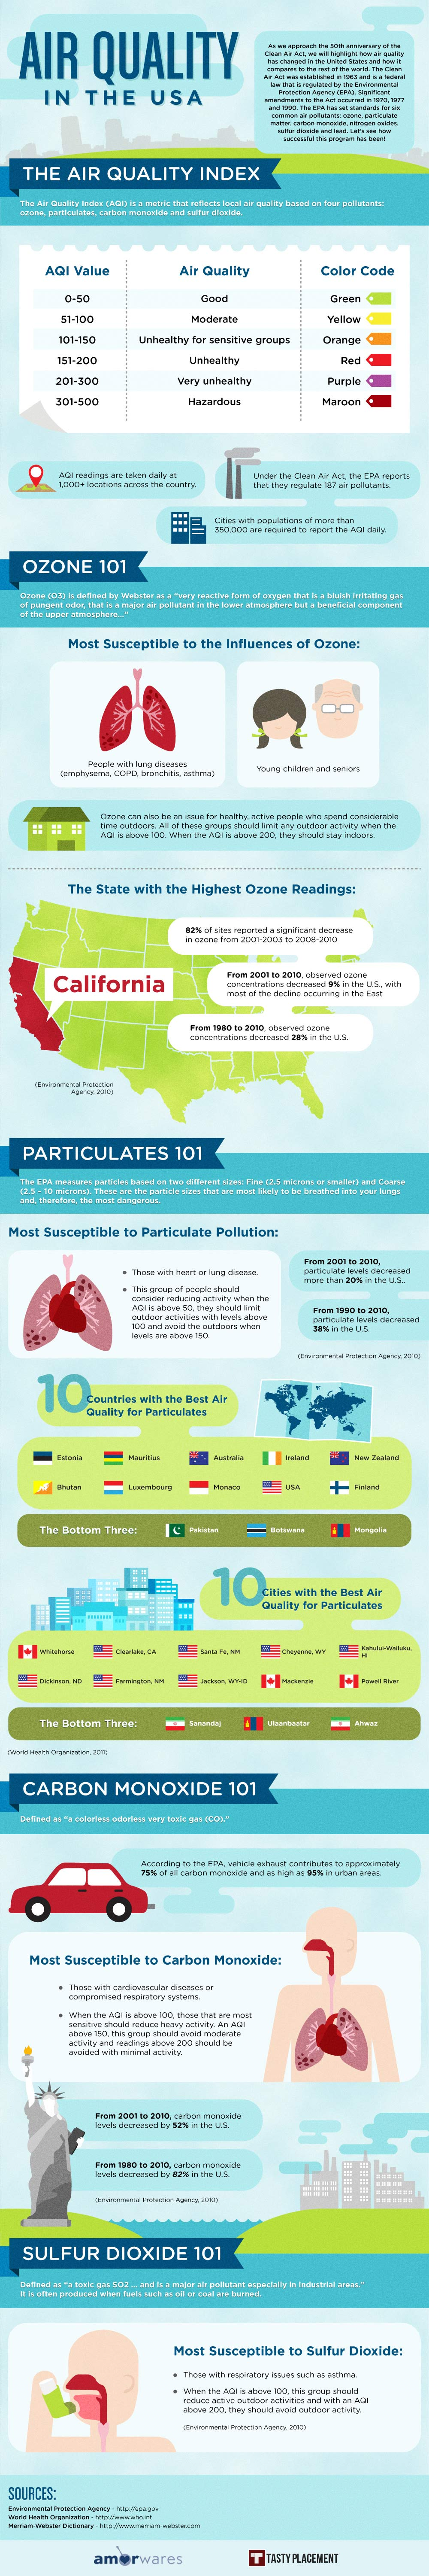 air-quality-in-the-usa_50f03edbee588